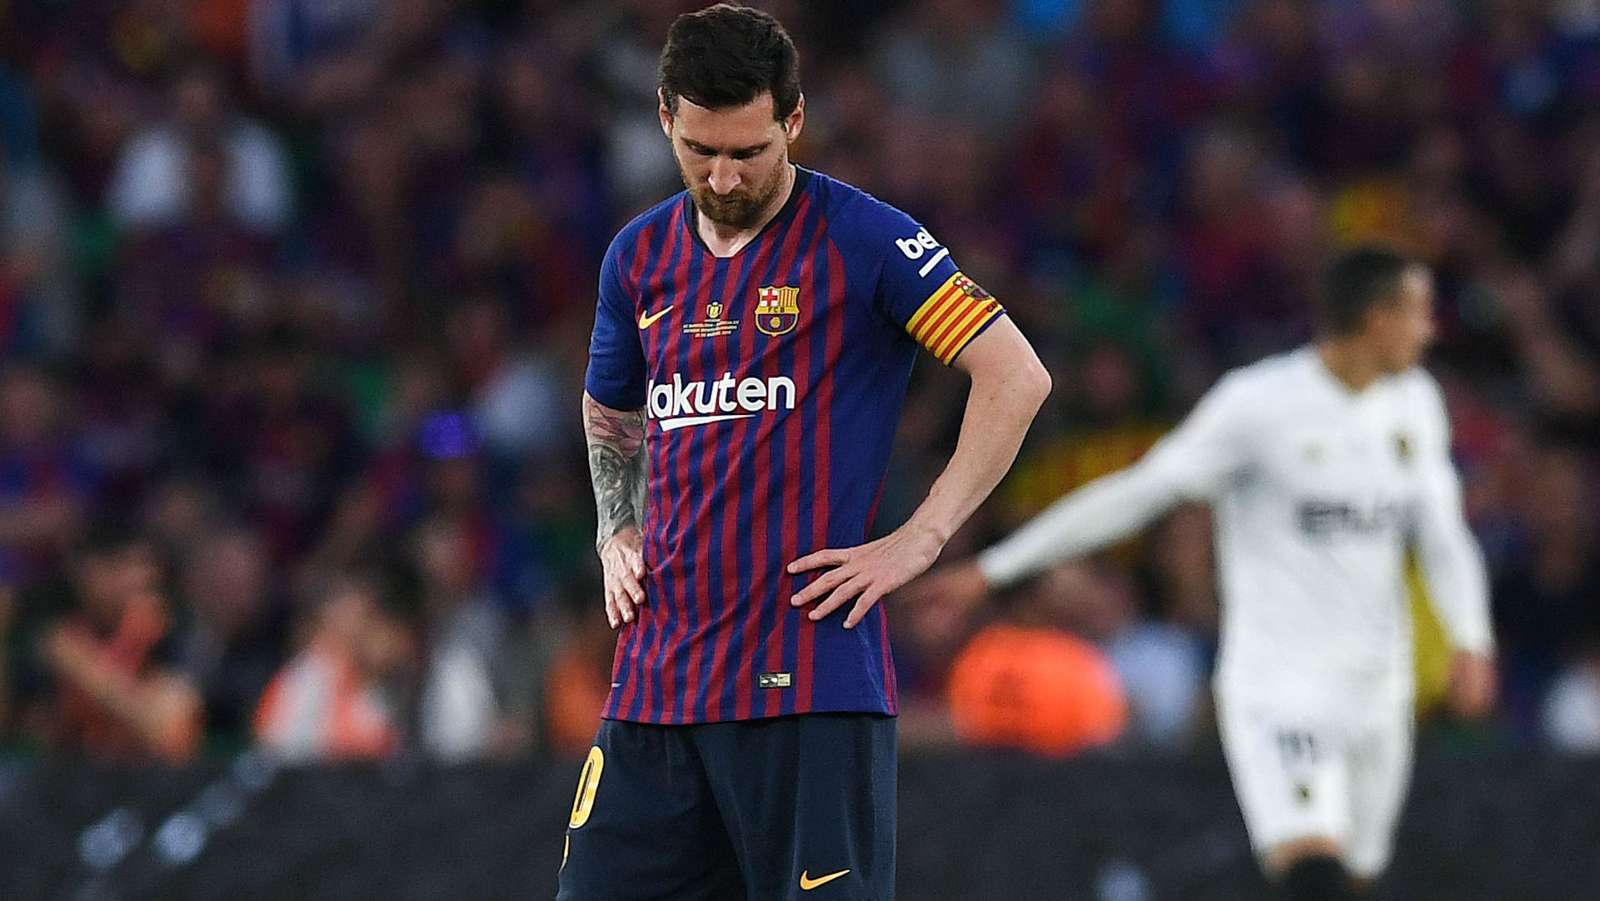 'Why doesn't he win in Europe?' - Van Gaal blames Messi for Barcelona's Champions League failures - Bóng Đá